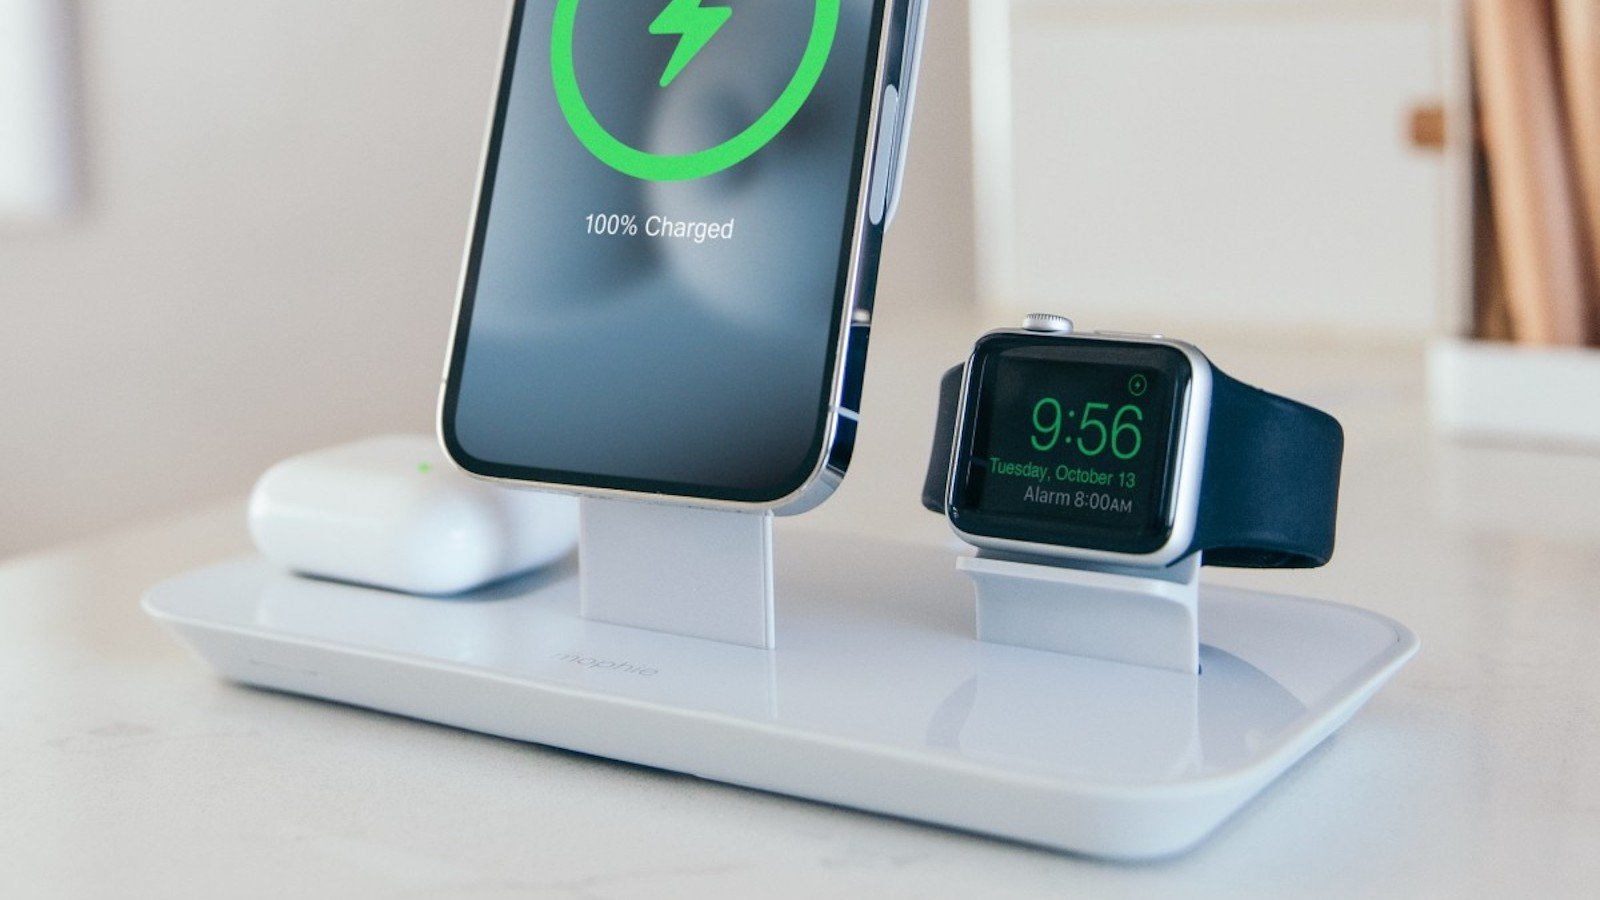 mophie 3-in-1 Stand for Magsafe Charger powers your iPhone, Apple Watch, and AirPods